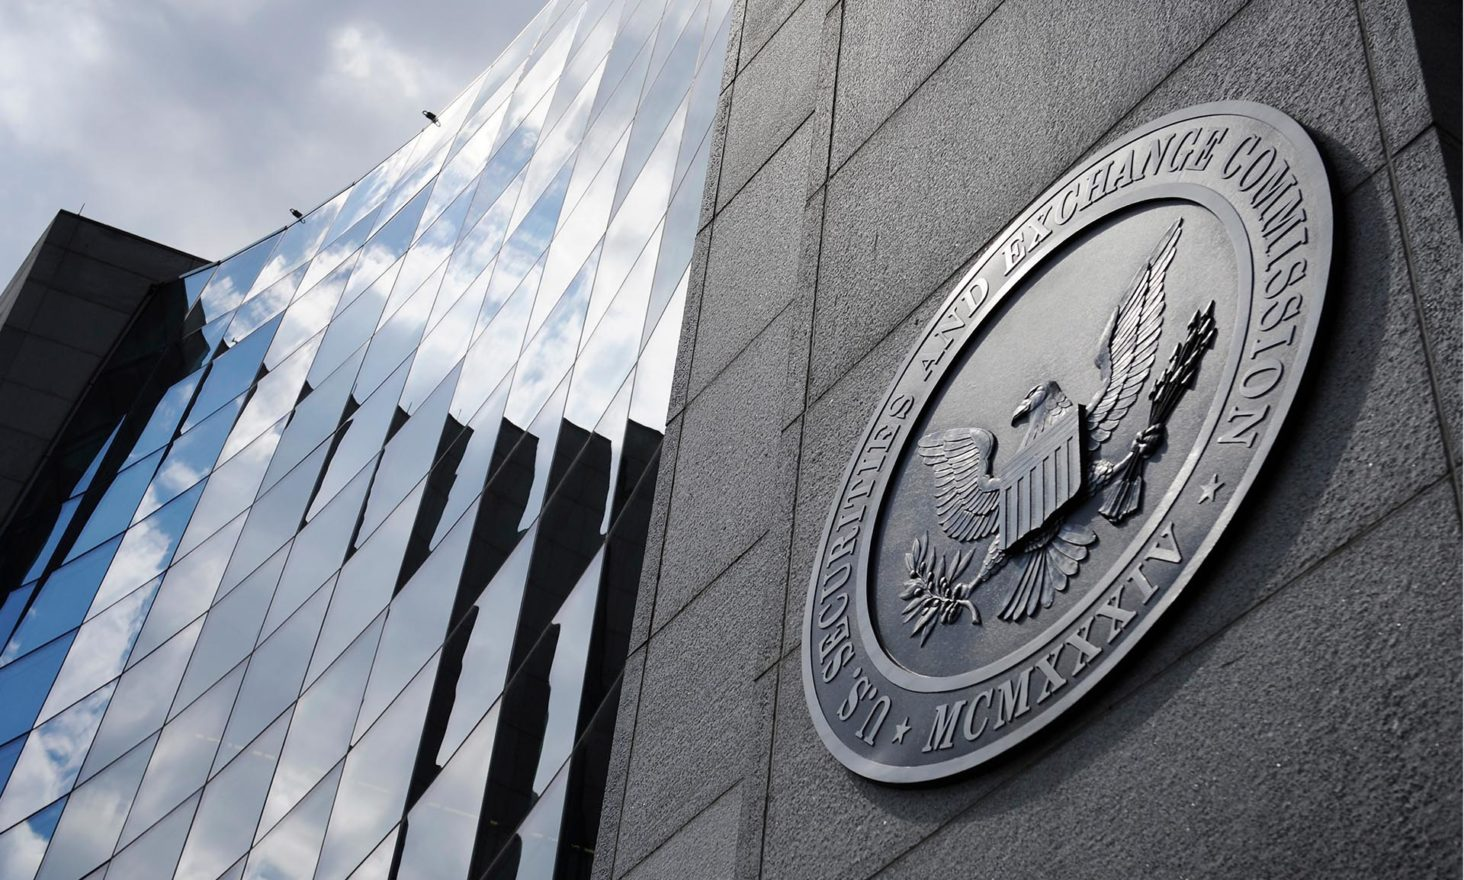 SEC Warns About Lack of Regulation in Cryptocurrency Markets